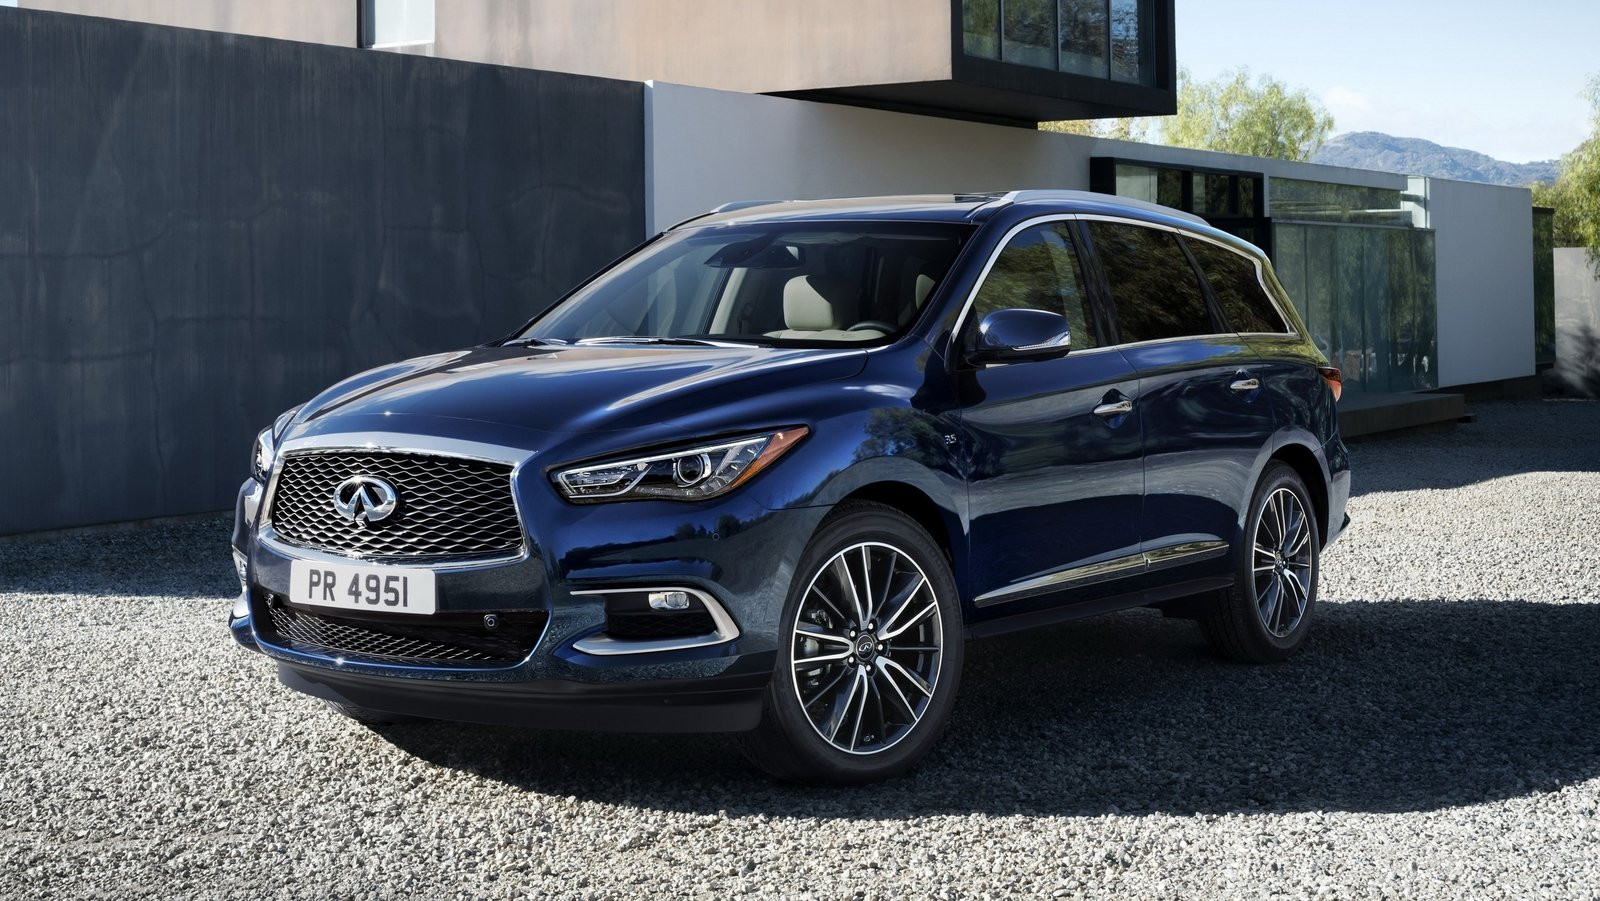 2017 infiniti qx60 review top speed. Black Bedroom Furniture Sets. Home Design Ideas